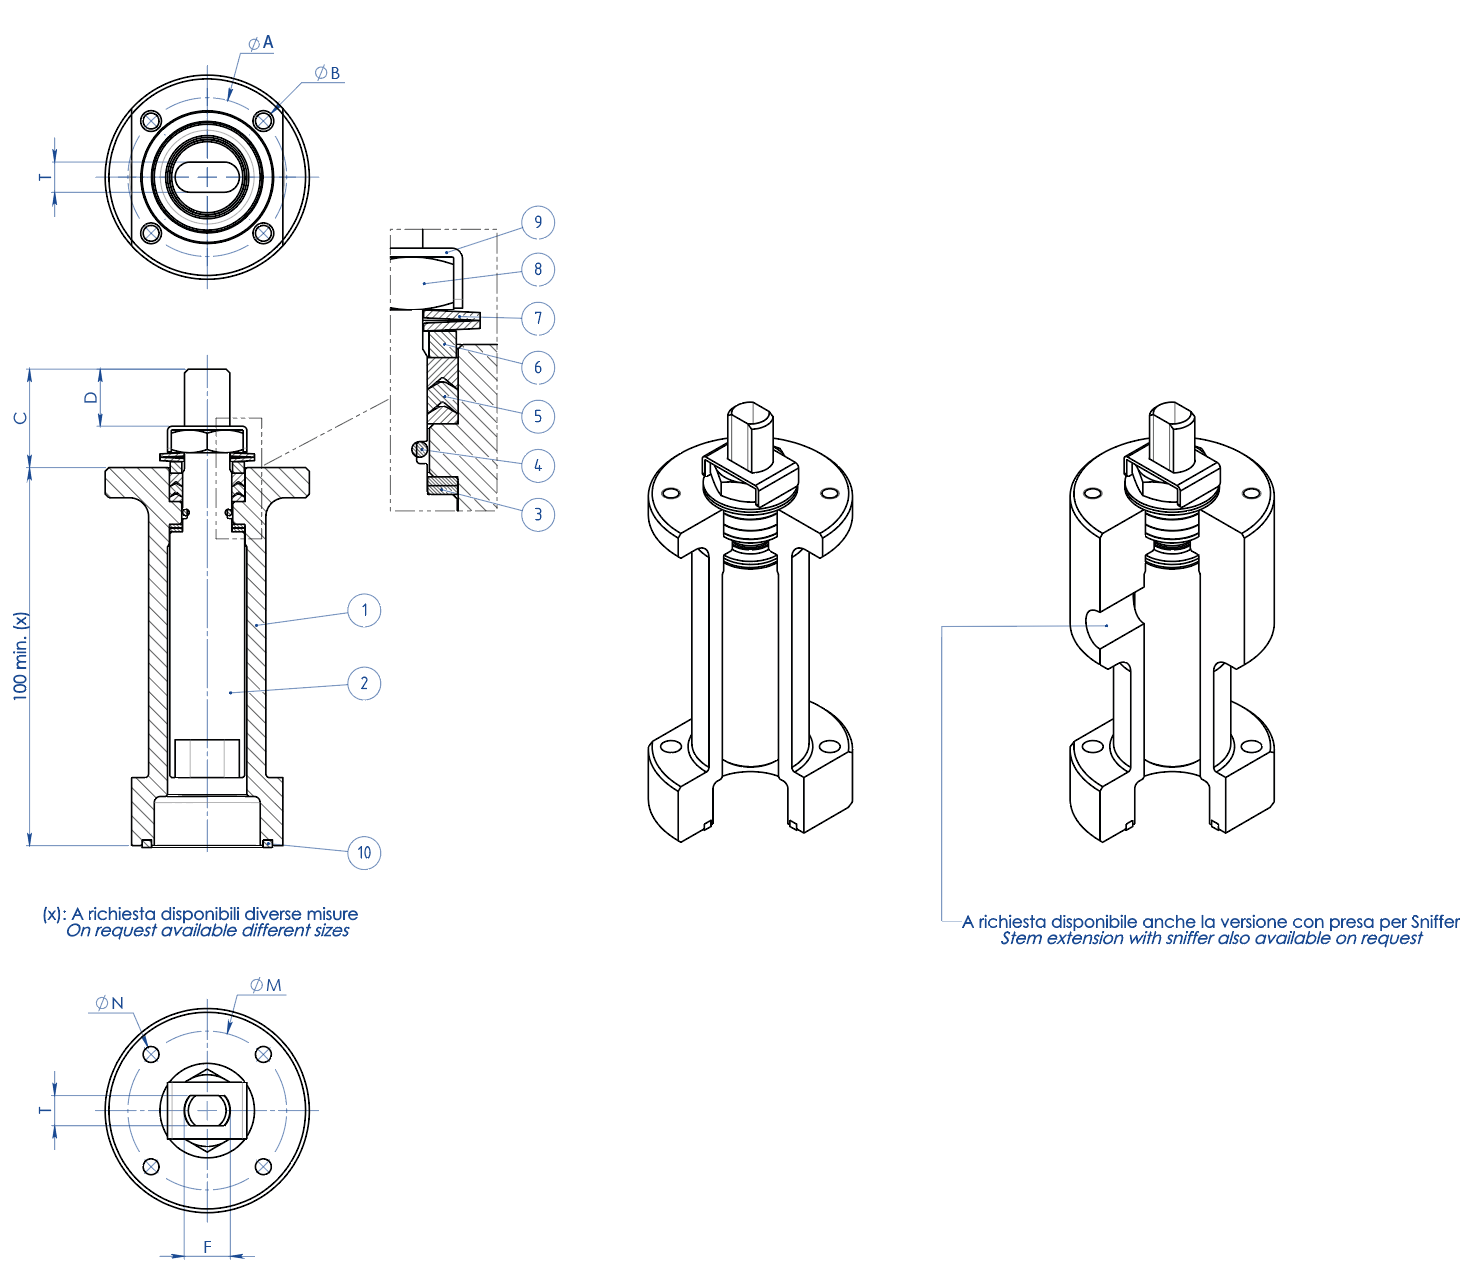 THOR Split Body 3 ways 4 seals PN 16-40 ANSI 150 stainless steel ball valve - accessories - STEM EXTENSION WITH ADDITIONAL SEAL